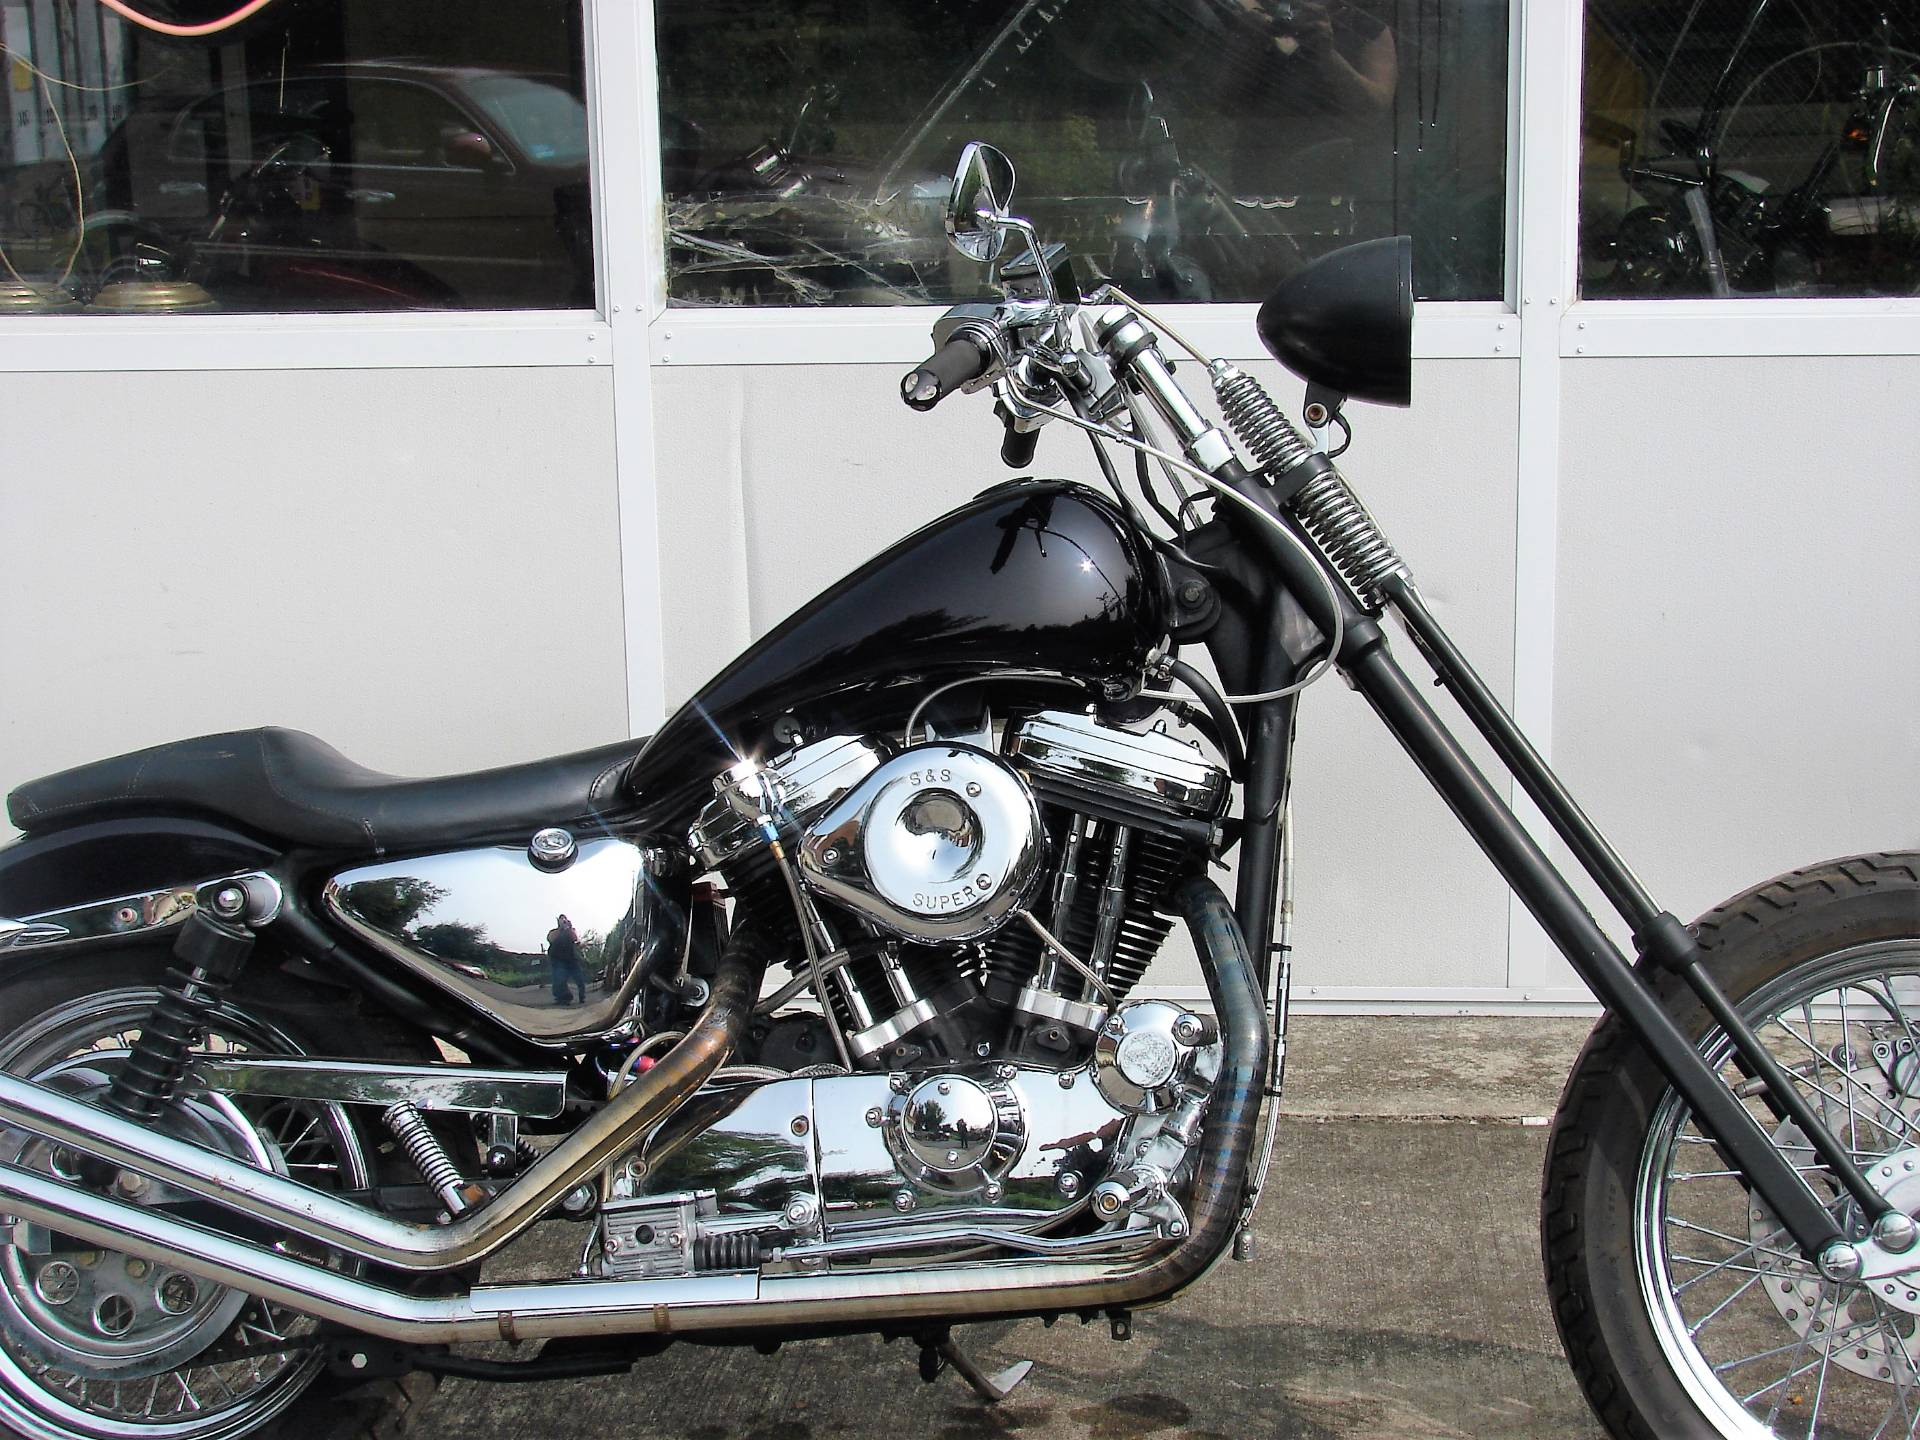 1995 Harley-Davidson XL 1200 Sportster (Conversion) in Williamstown, New Jersey - Photo 12